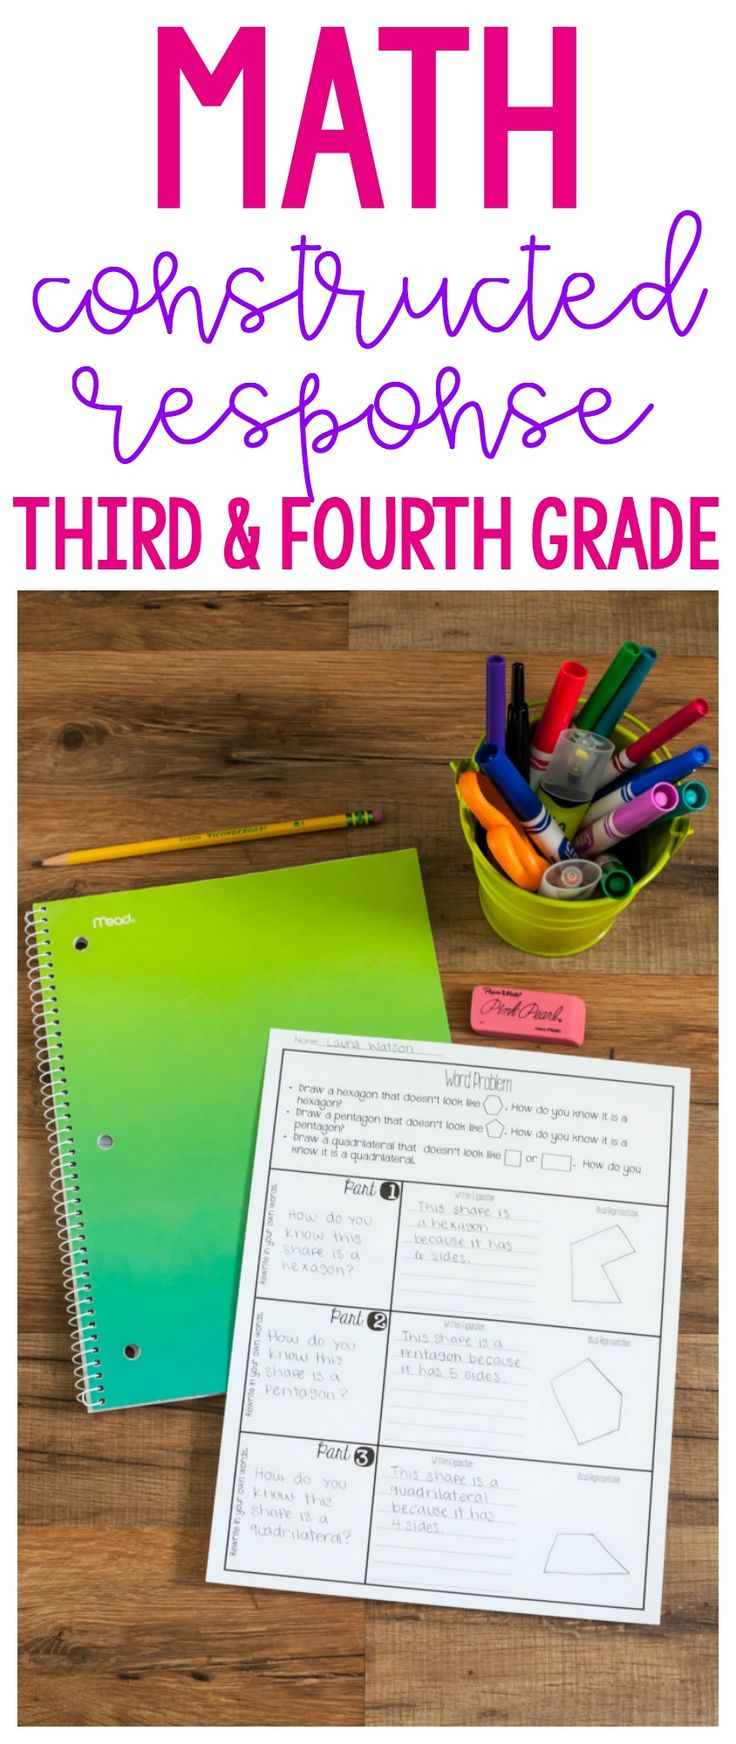 Take the stress out of math constructed response problems and multi part problems with this scaffolded approach to math constructed response! This includes separate versions for third and fourth grade!